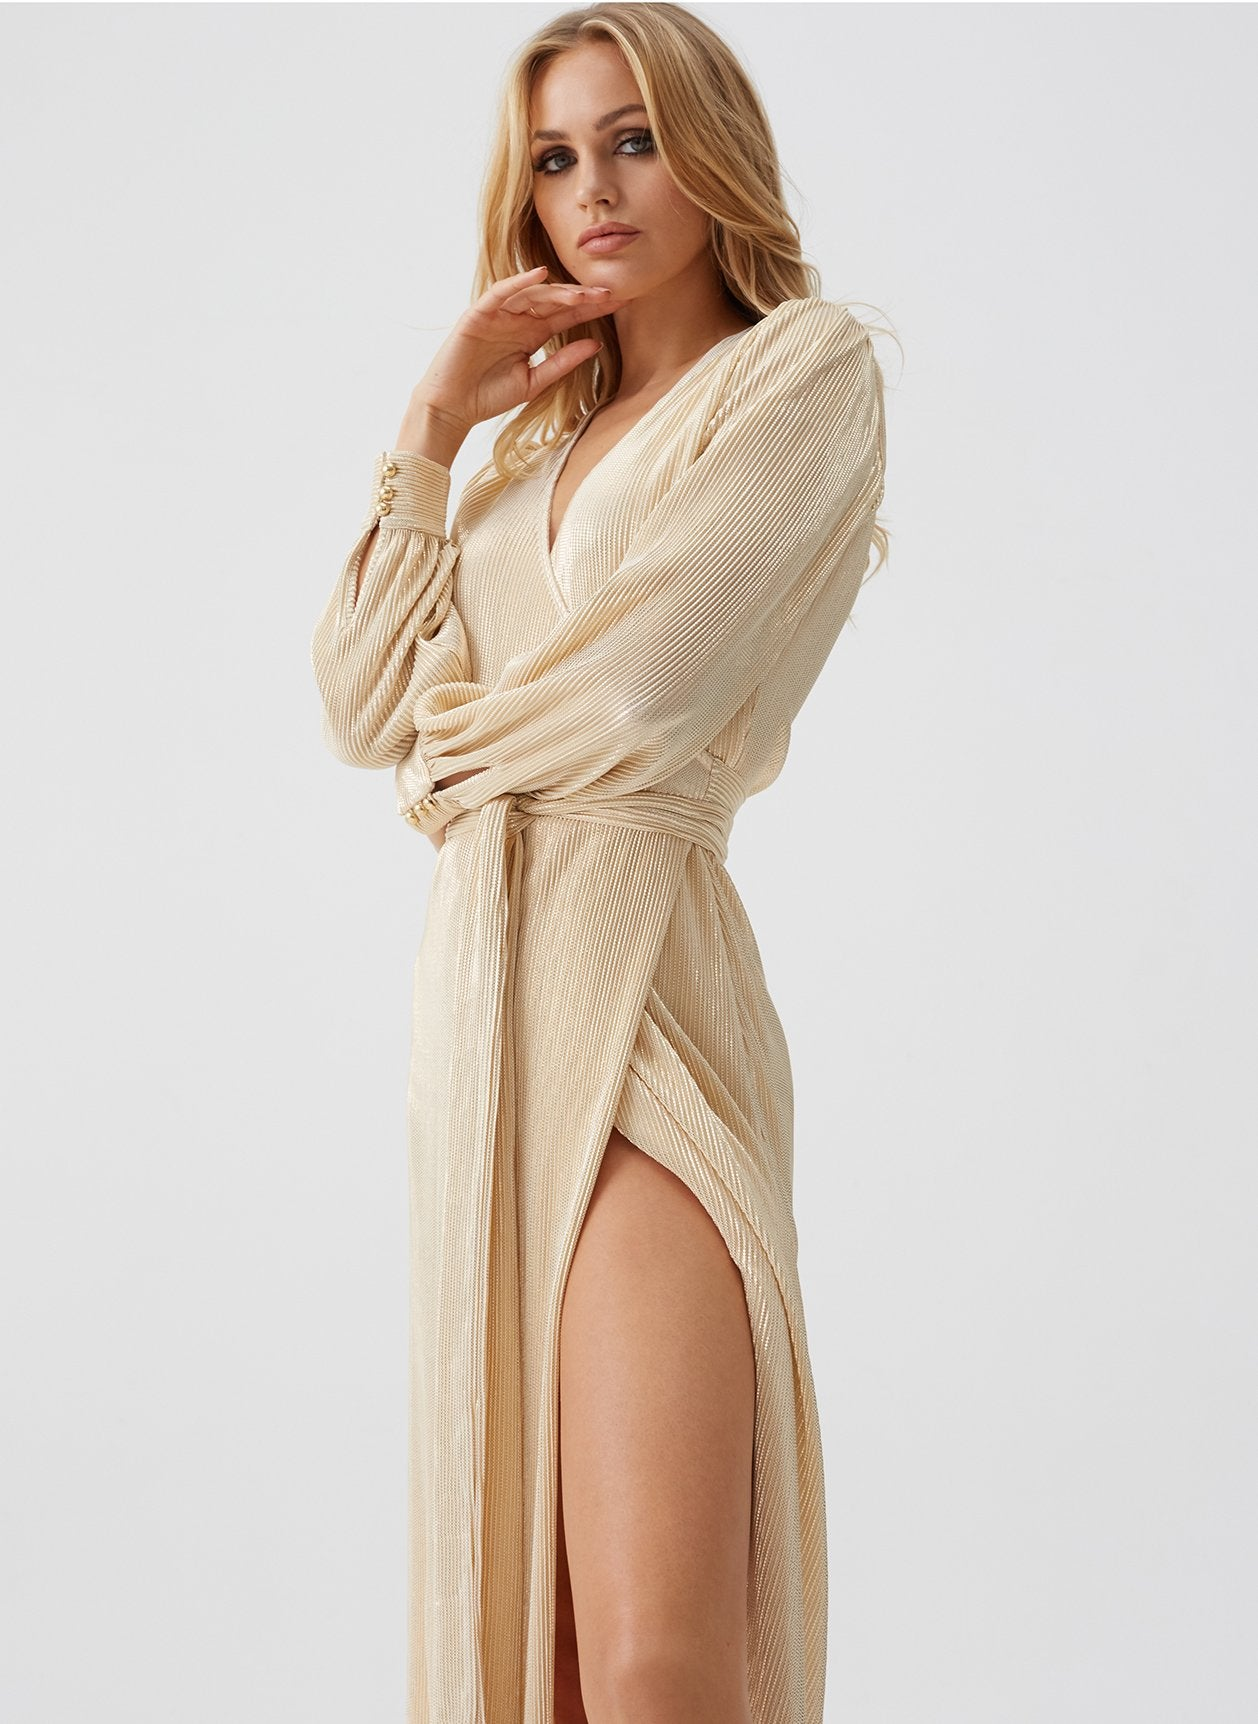 Bree Gold Maxi Dress